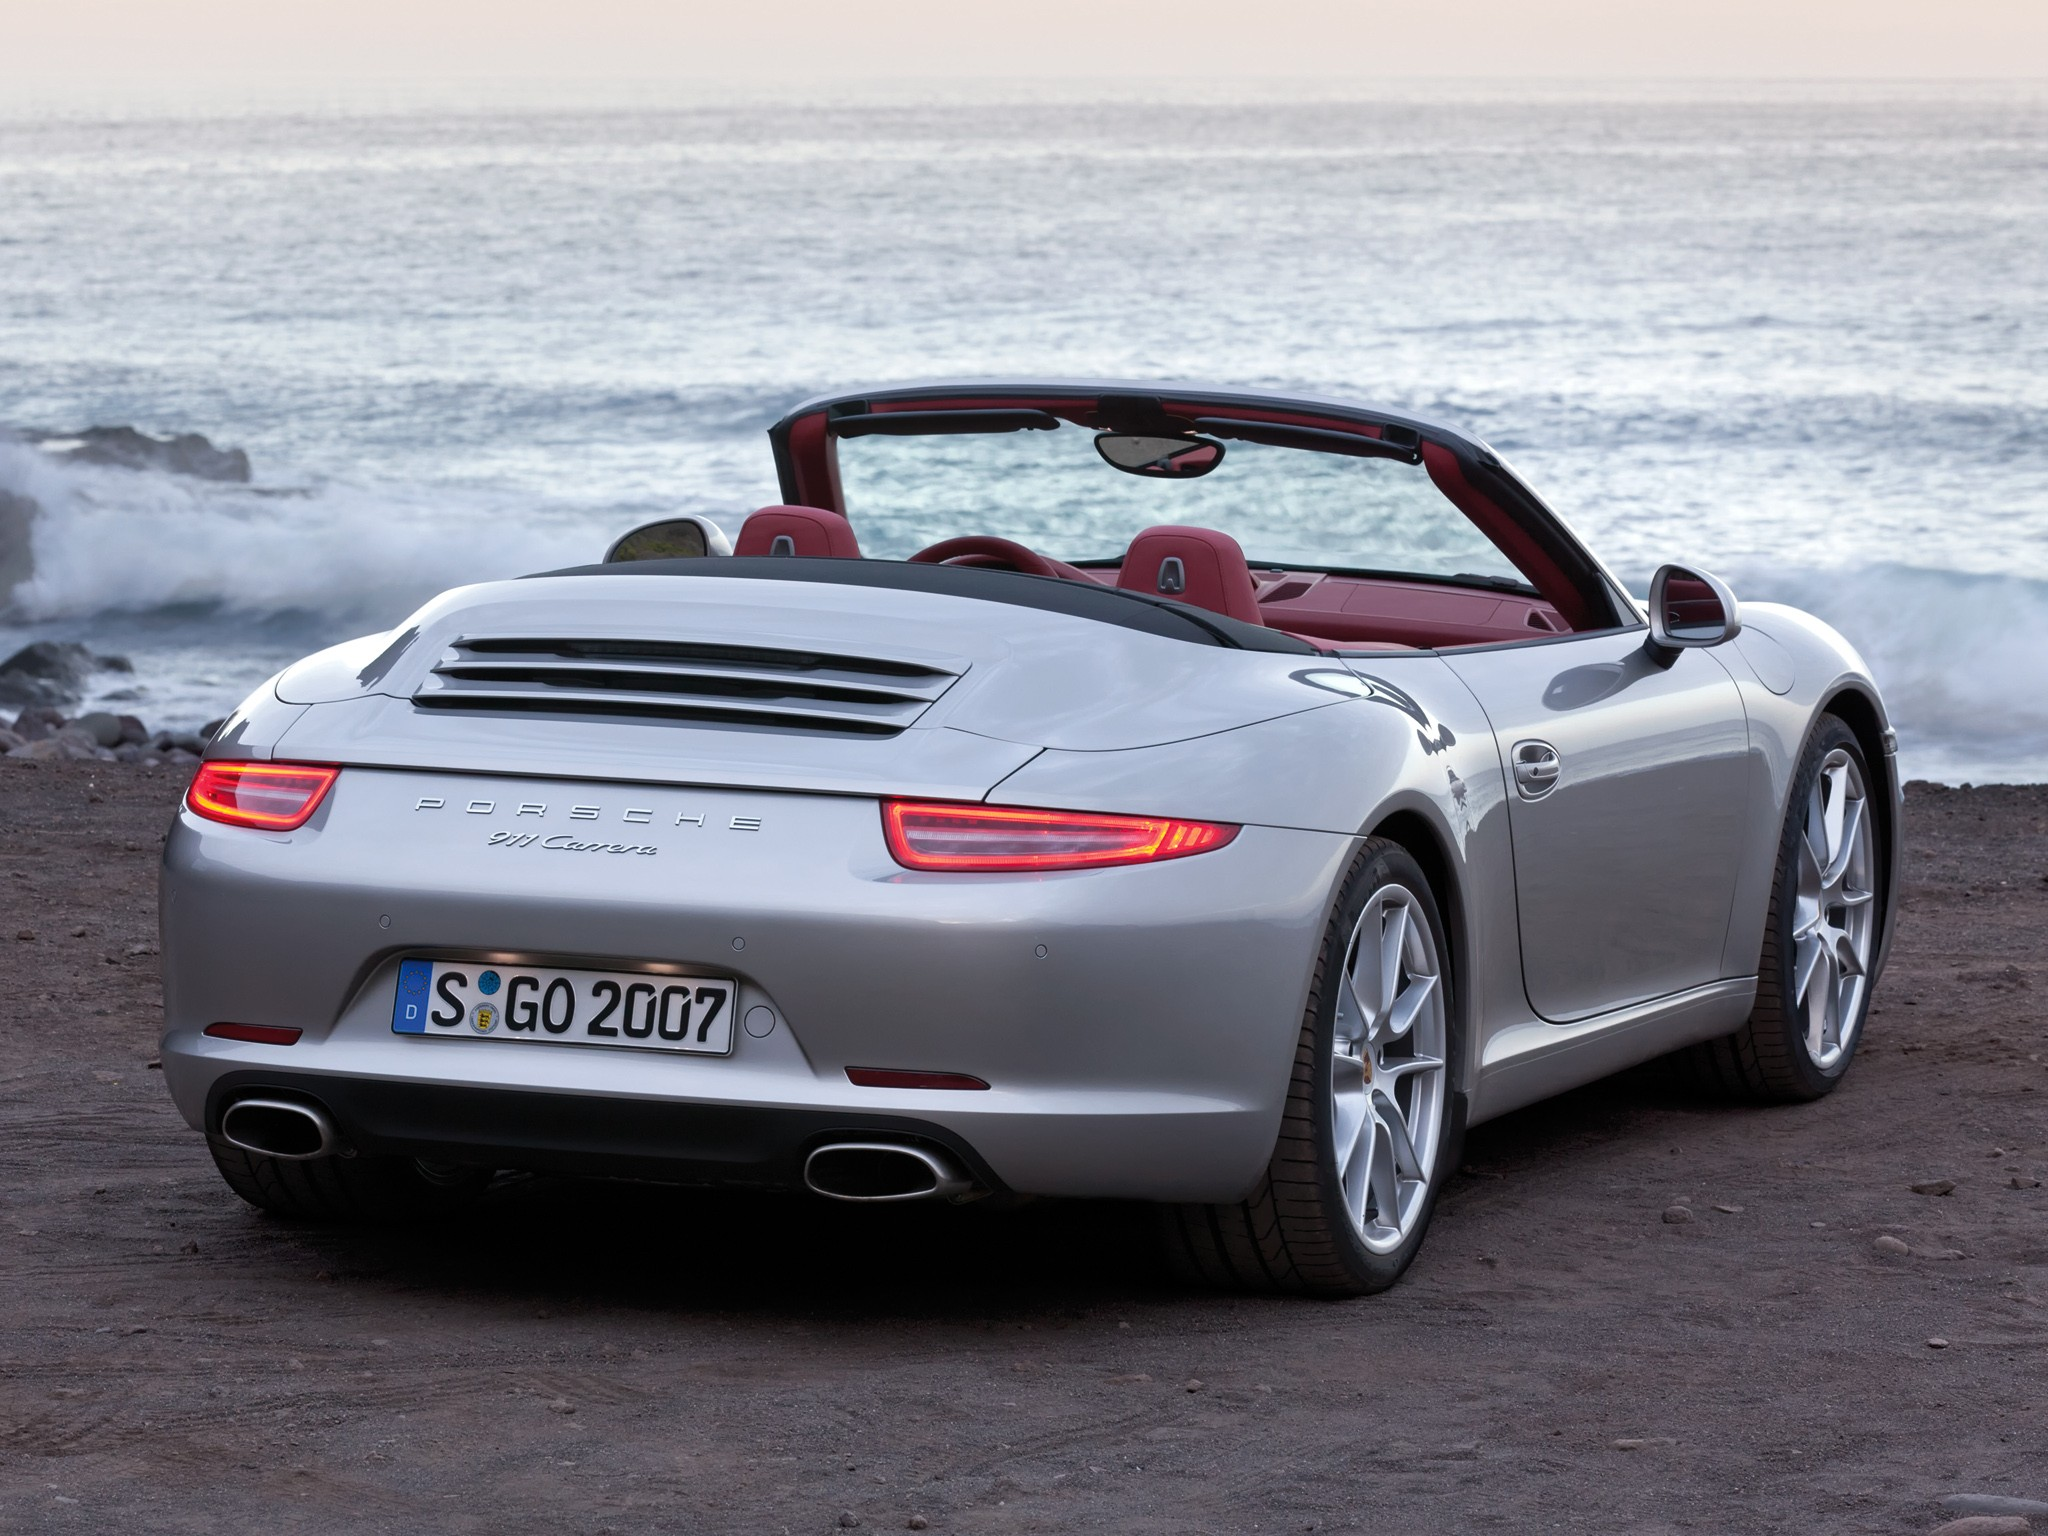 porsche 911 carrera cabriolet 991 specs photos 2012 2013 2014 2015 autoevolution. Black Bedroom Furniture Sets. Home Design Ideas